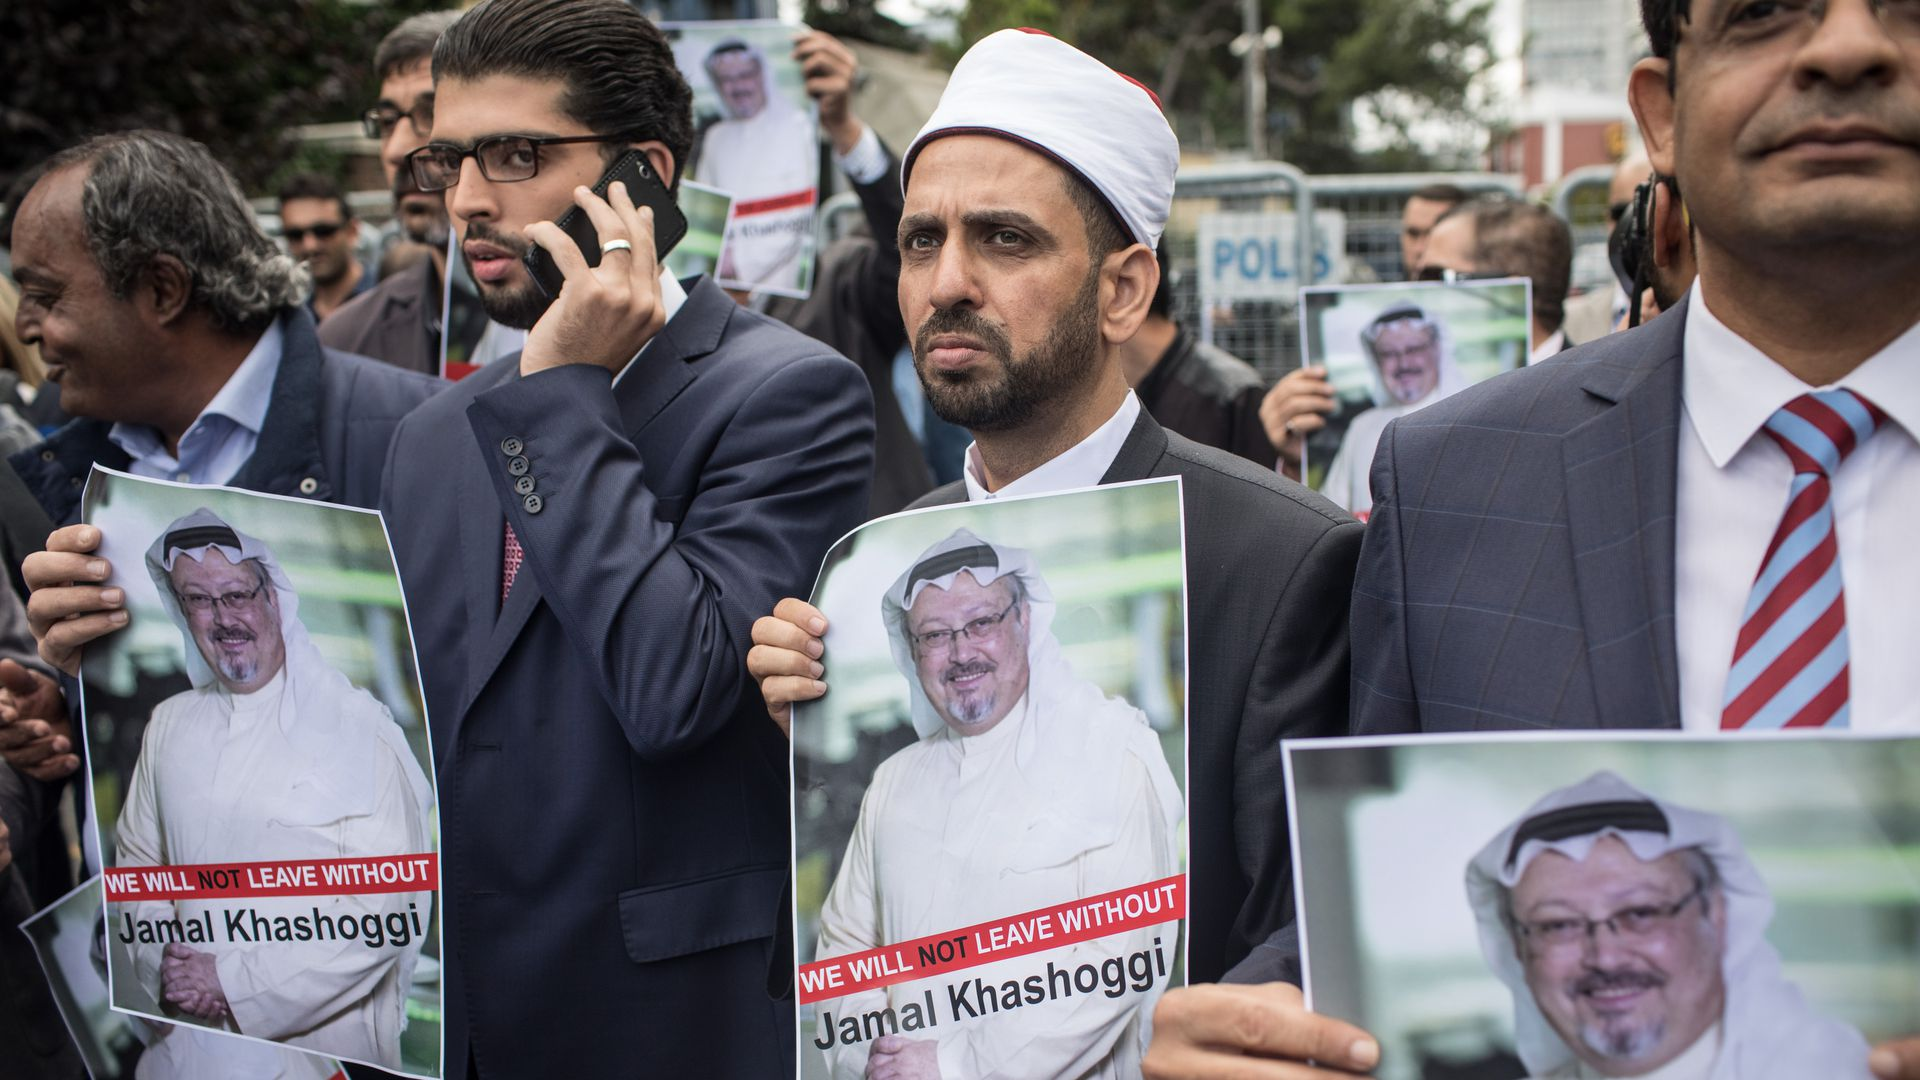 Protestors hold up signs for missing journalist Jamal Khashoggi